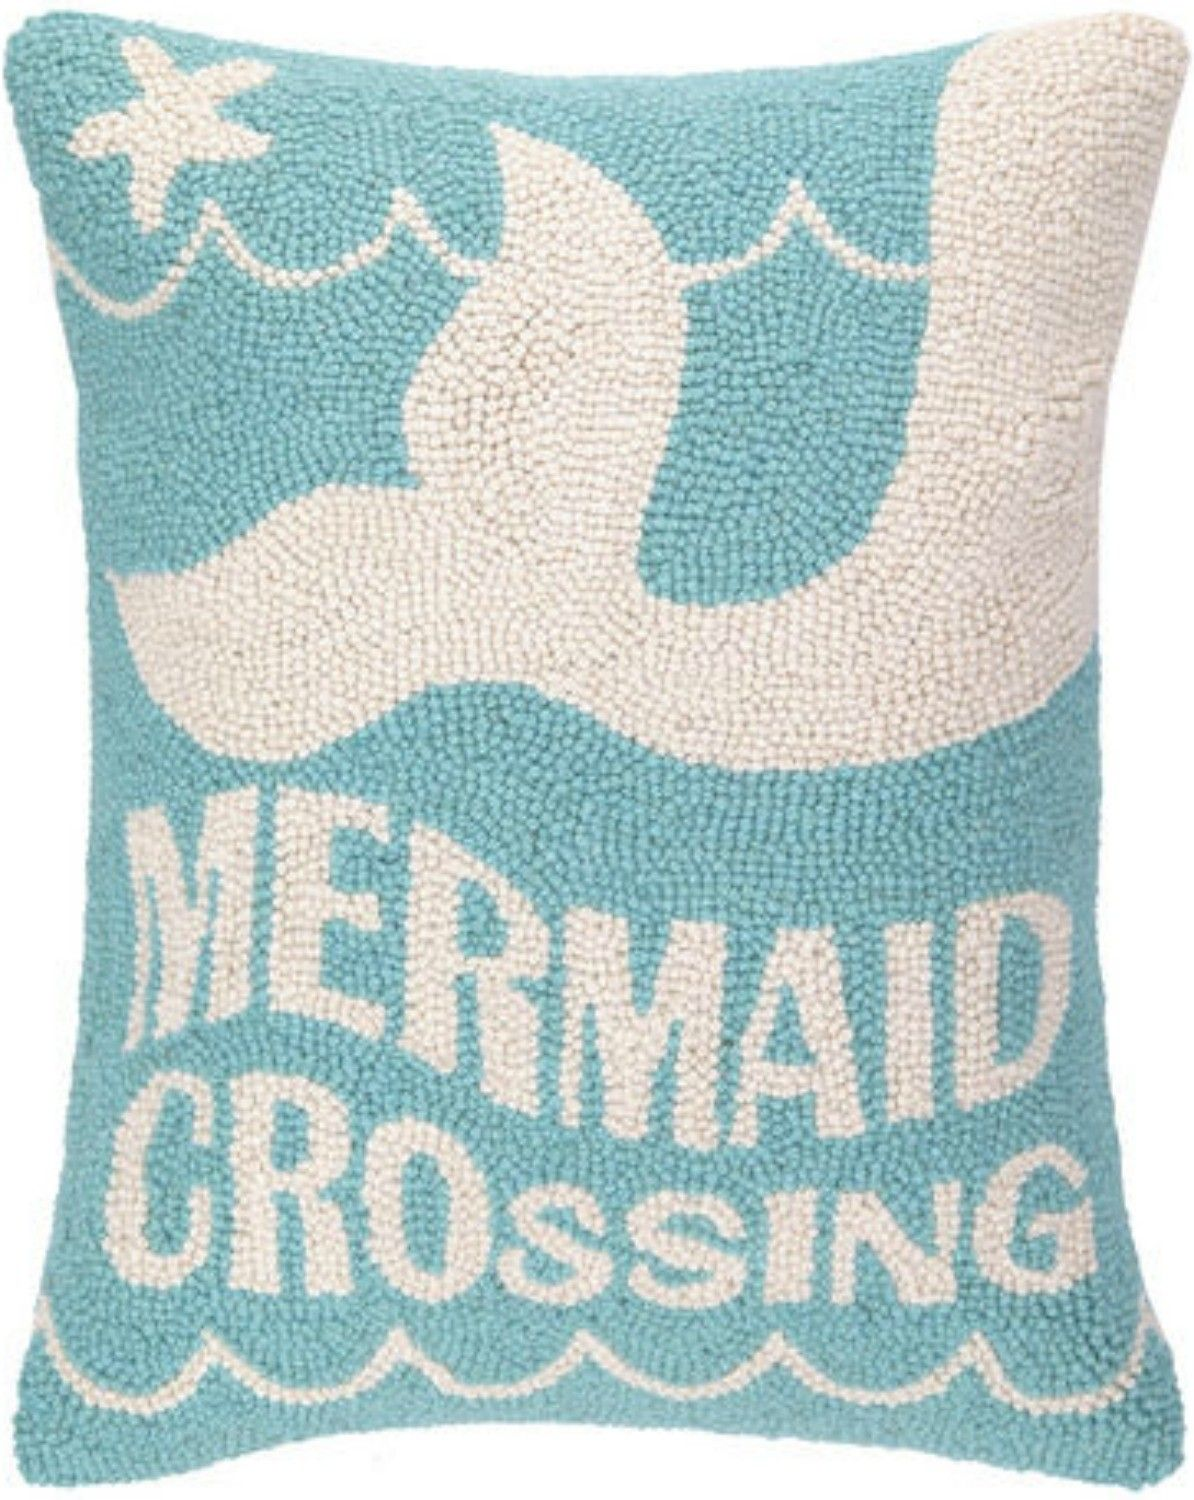 themed pillow for decor nautical beach pillows decorative